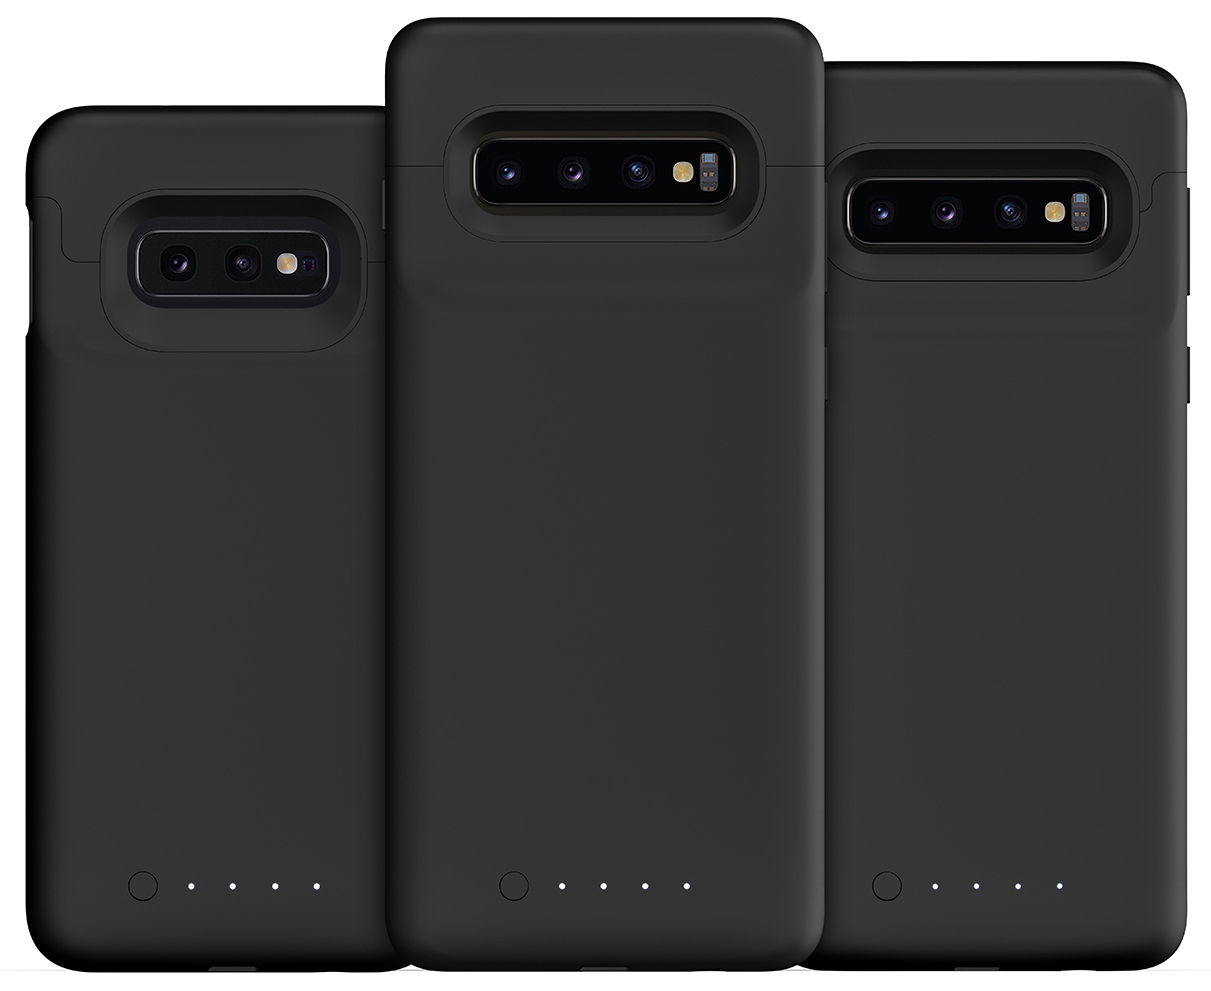 S10 Mophie cases